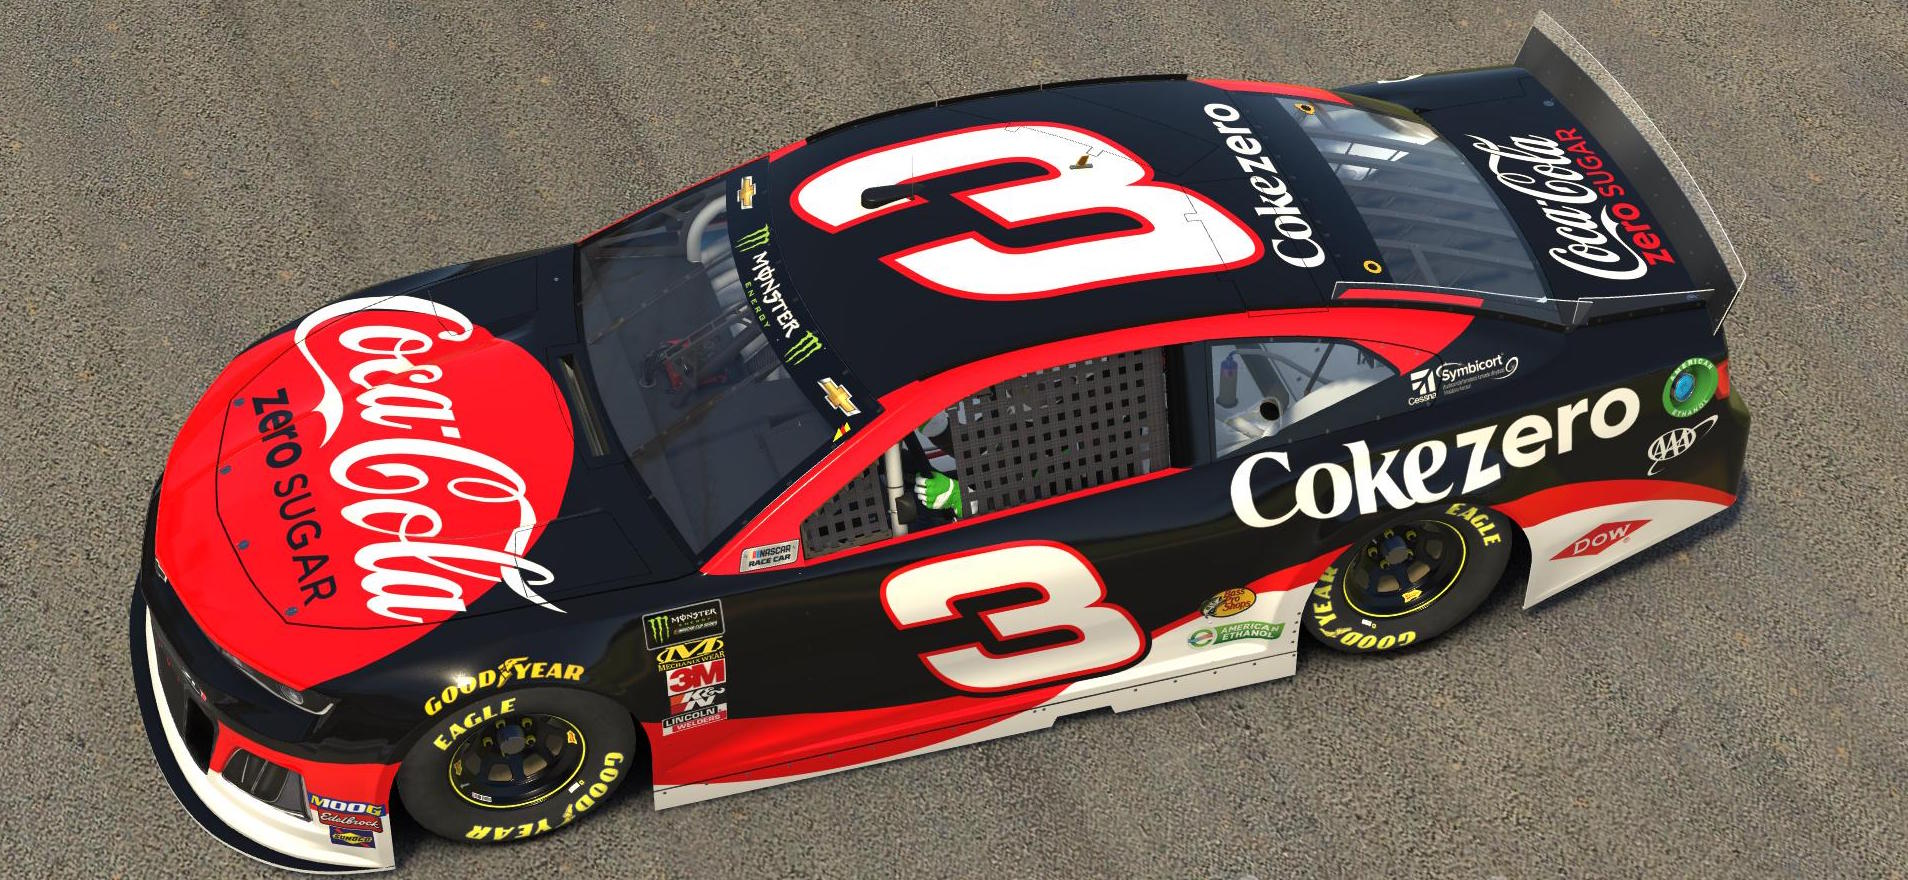 Austin Dillon's Coca-Cola 600 paint scheme is replicated on iRacing.